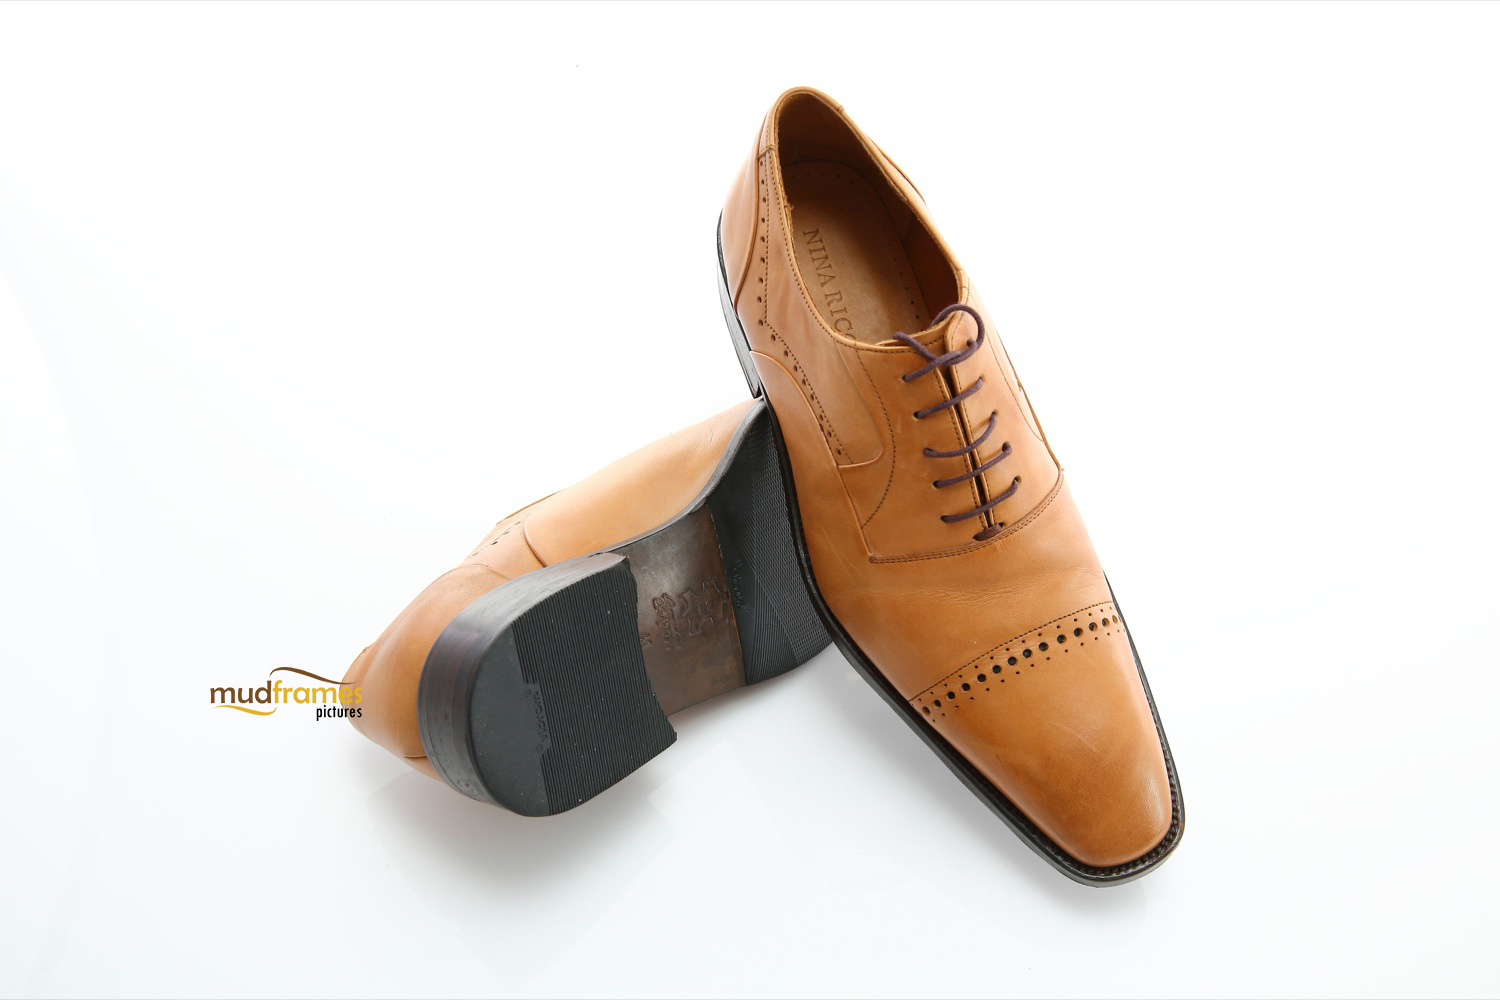 Brown Nina Ricci shoes on white background